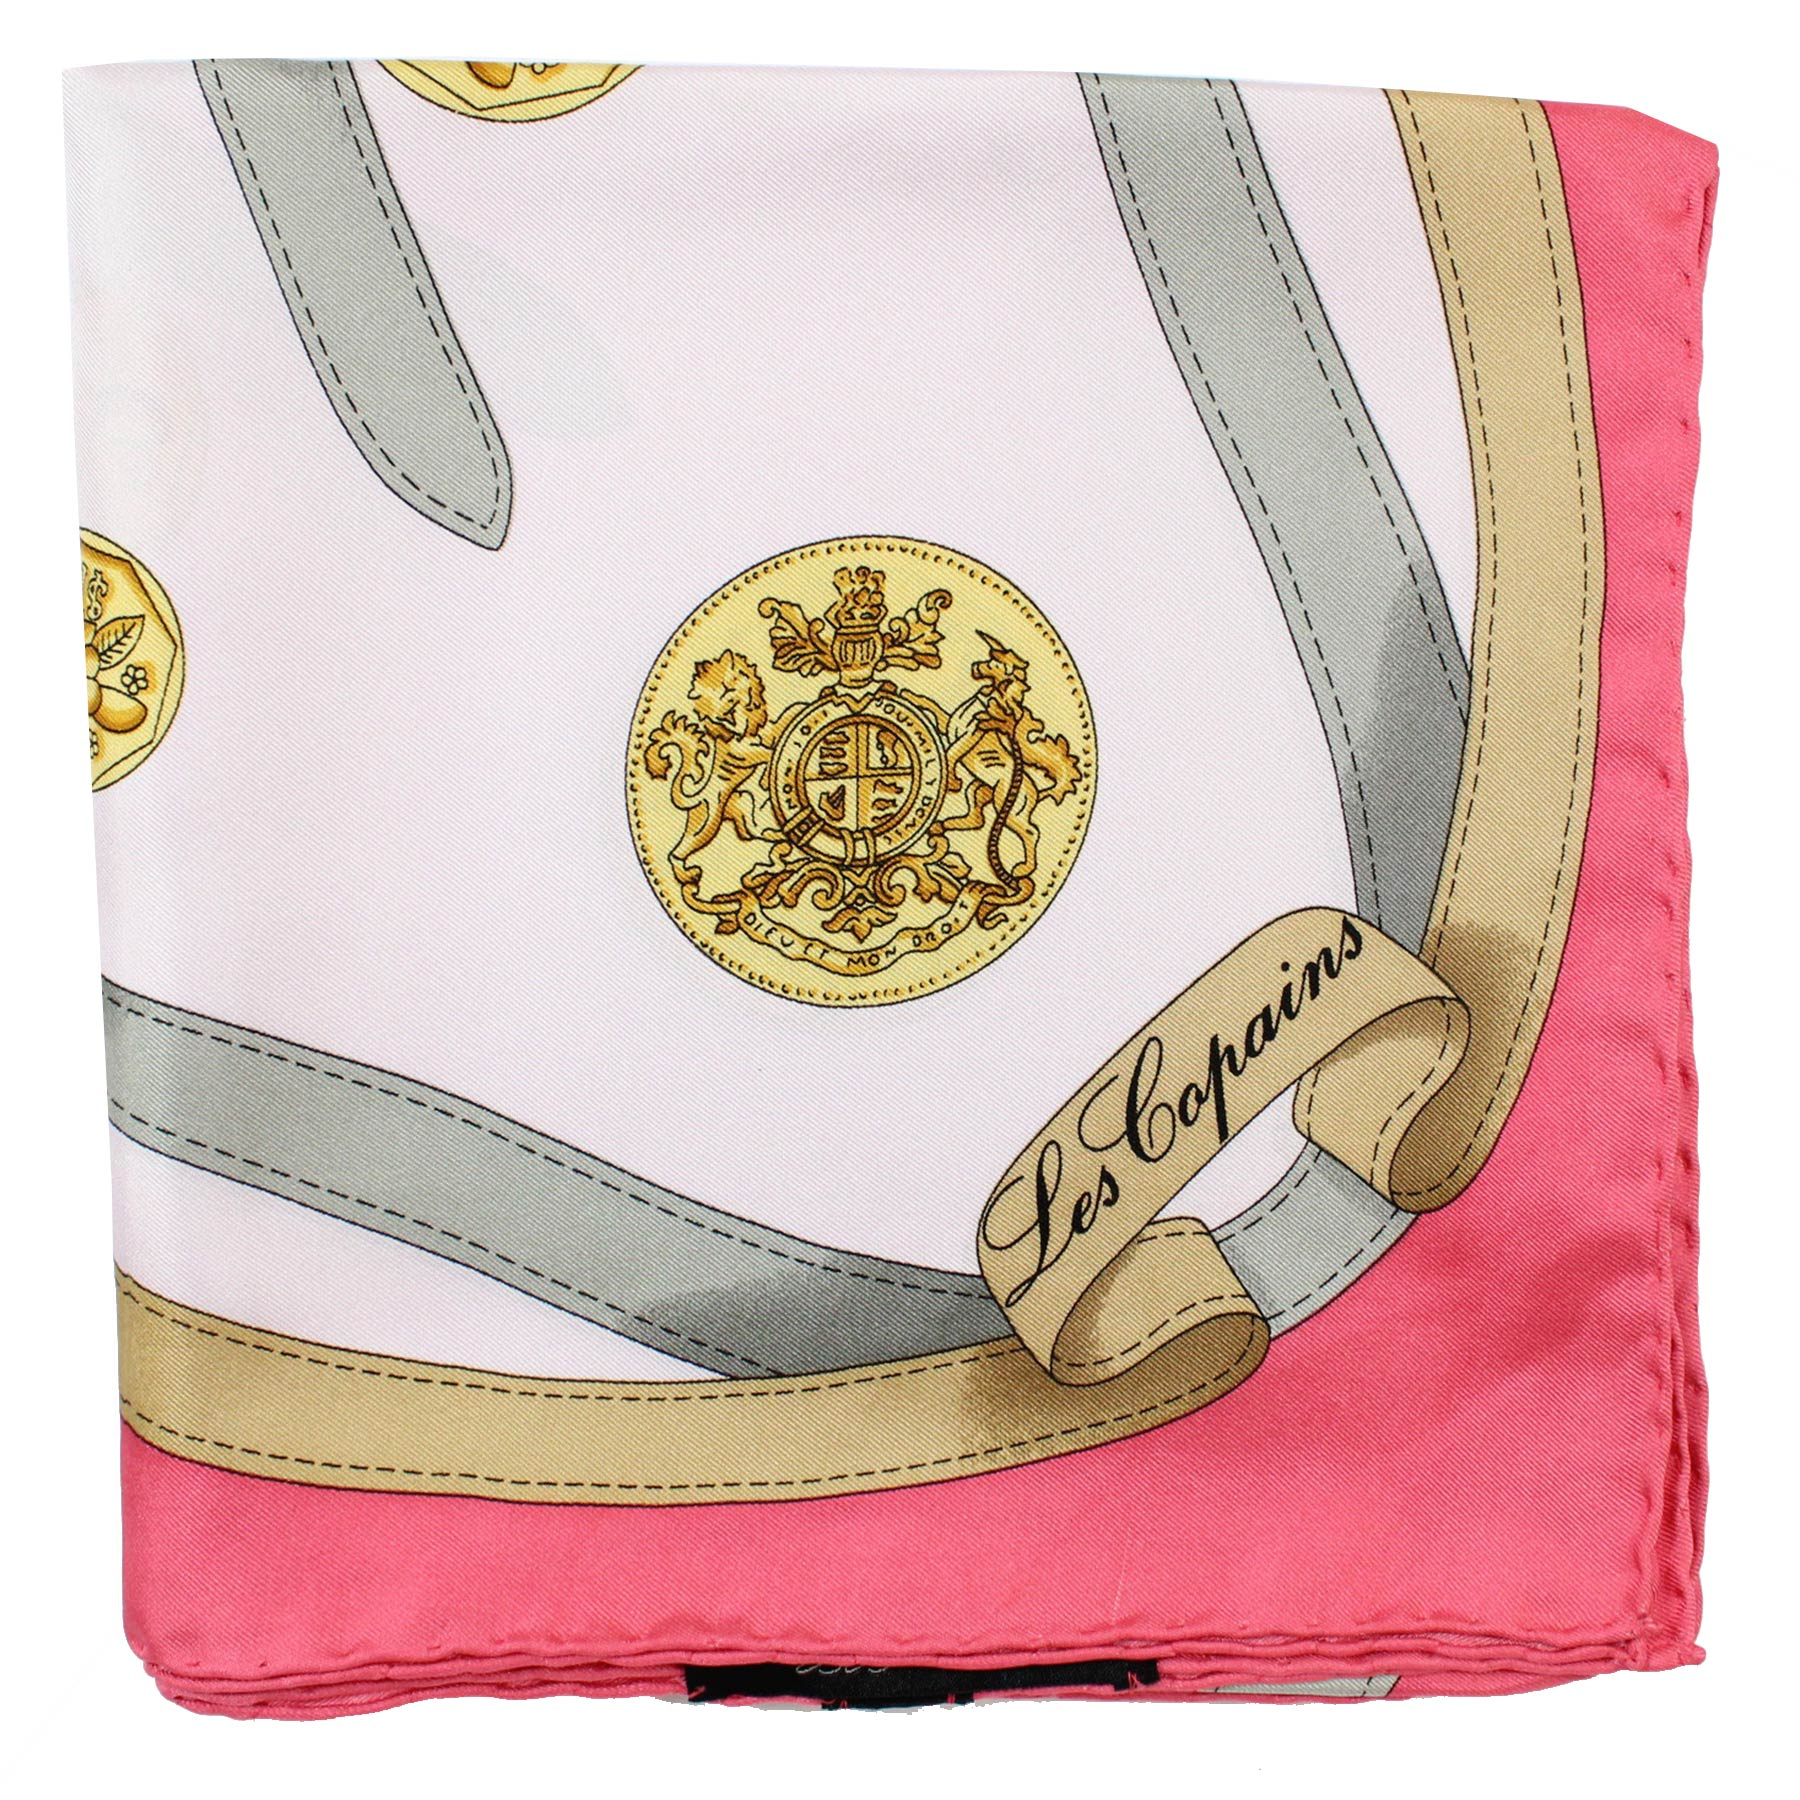 Les Copains Scarf Pink New